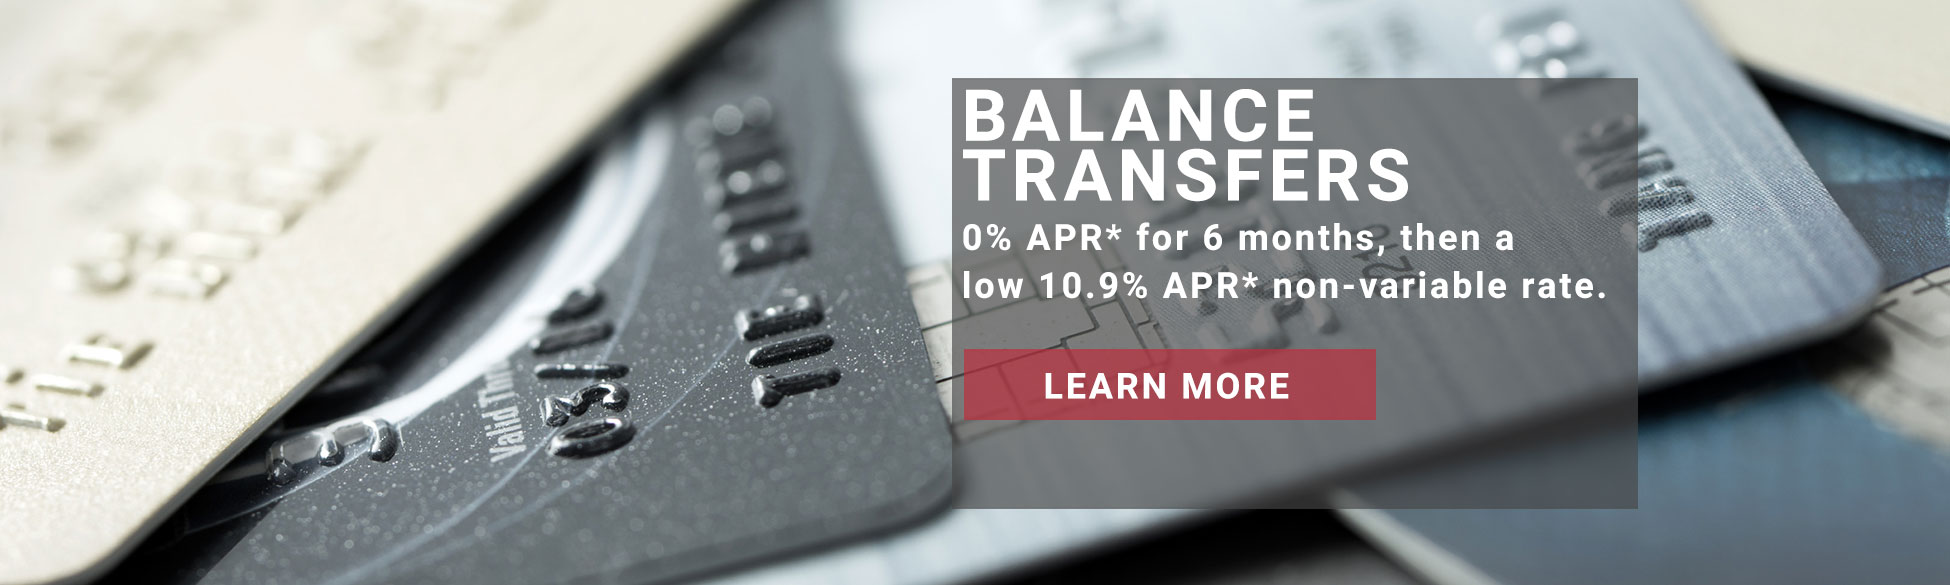 Balance Transfers - 0% APR* for 6 months, then a low 10.9% APR* non-variable rate. Learn more.